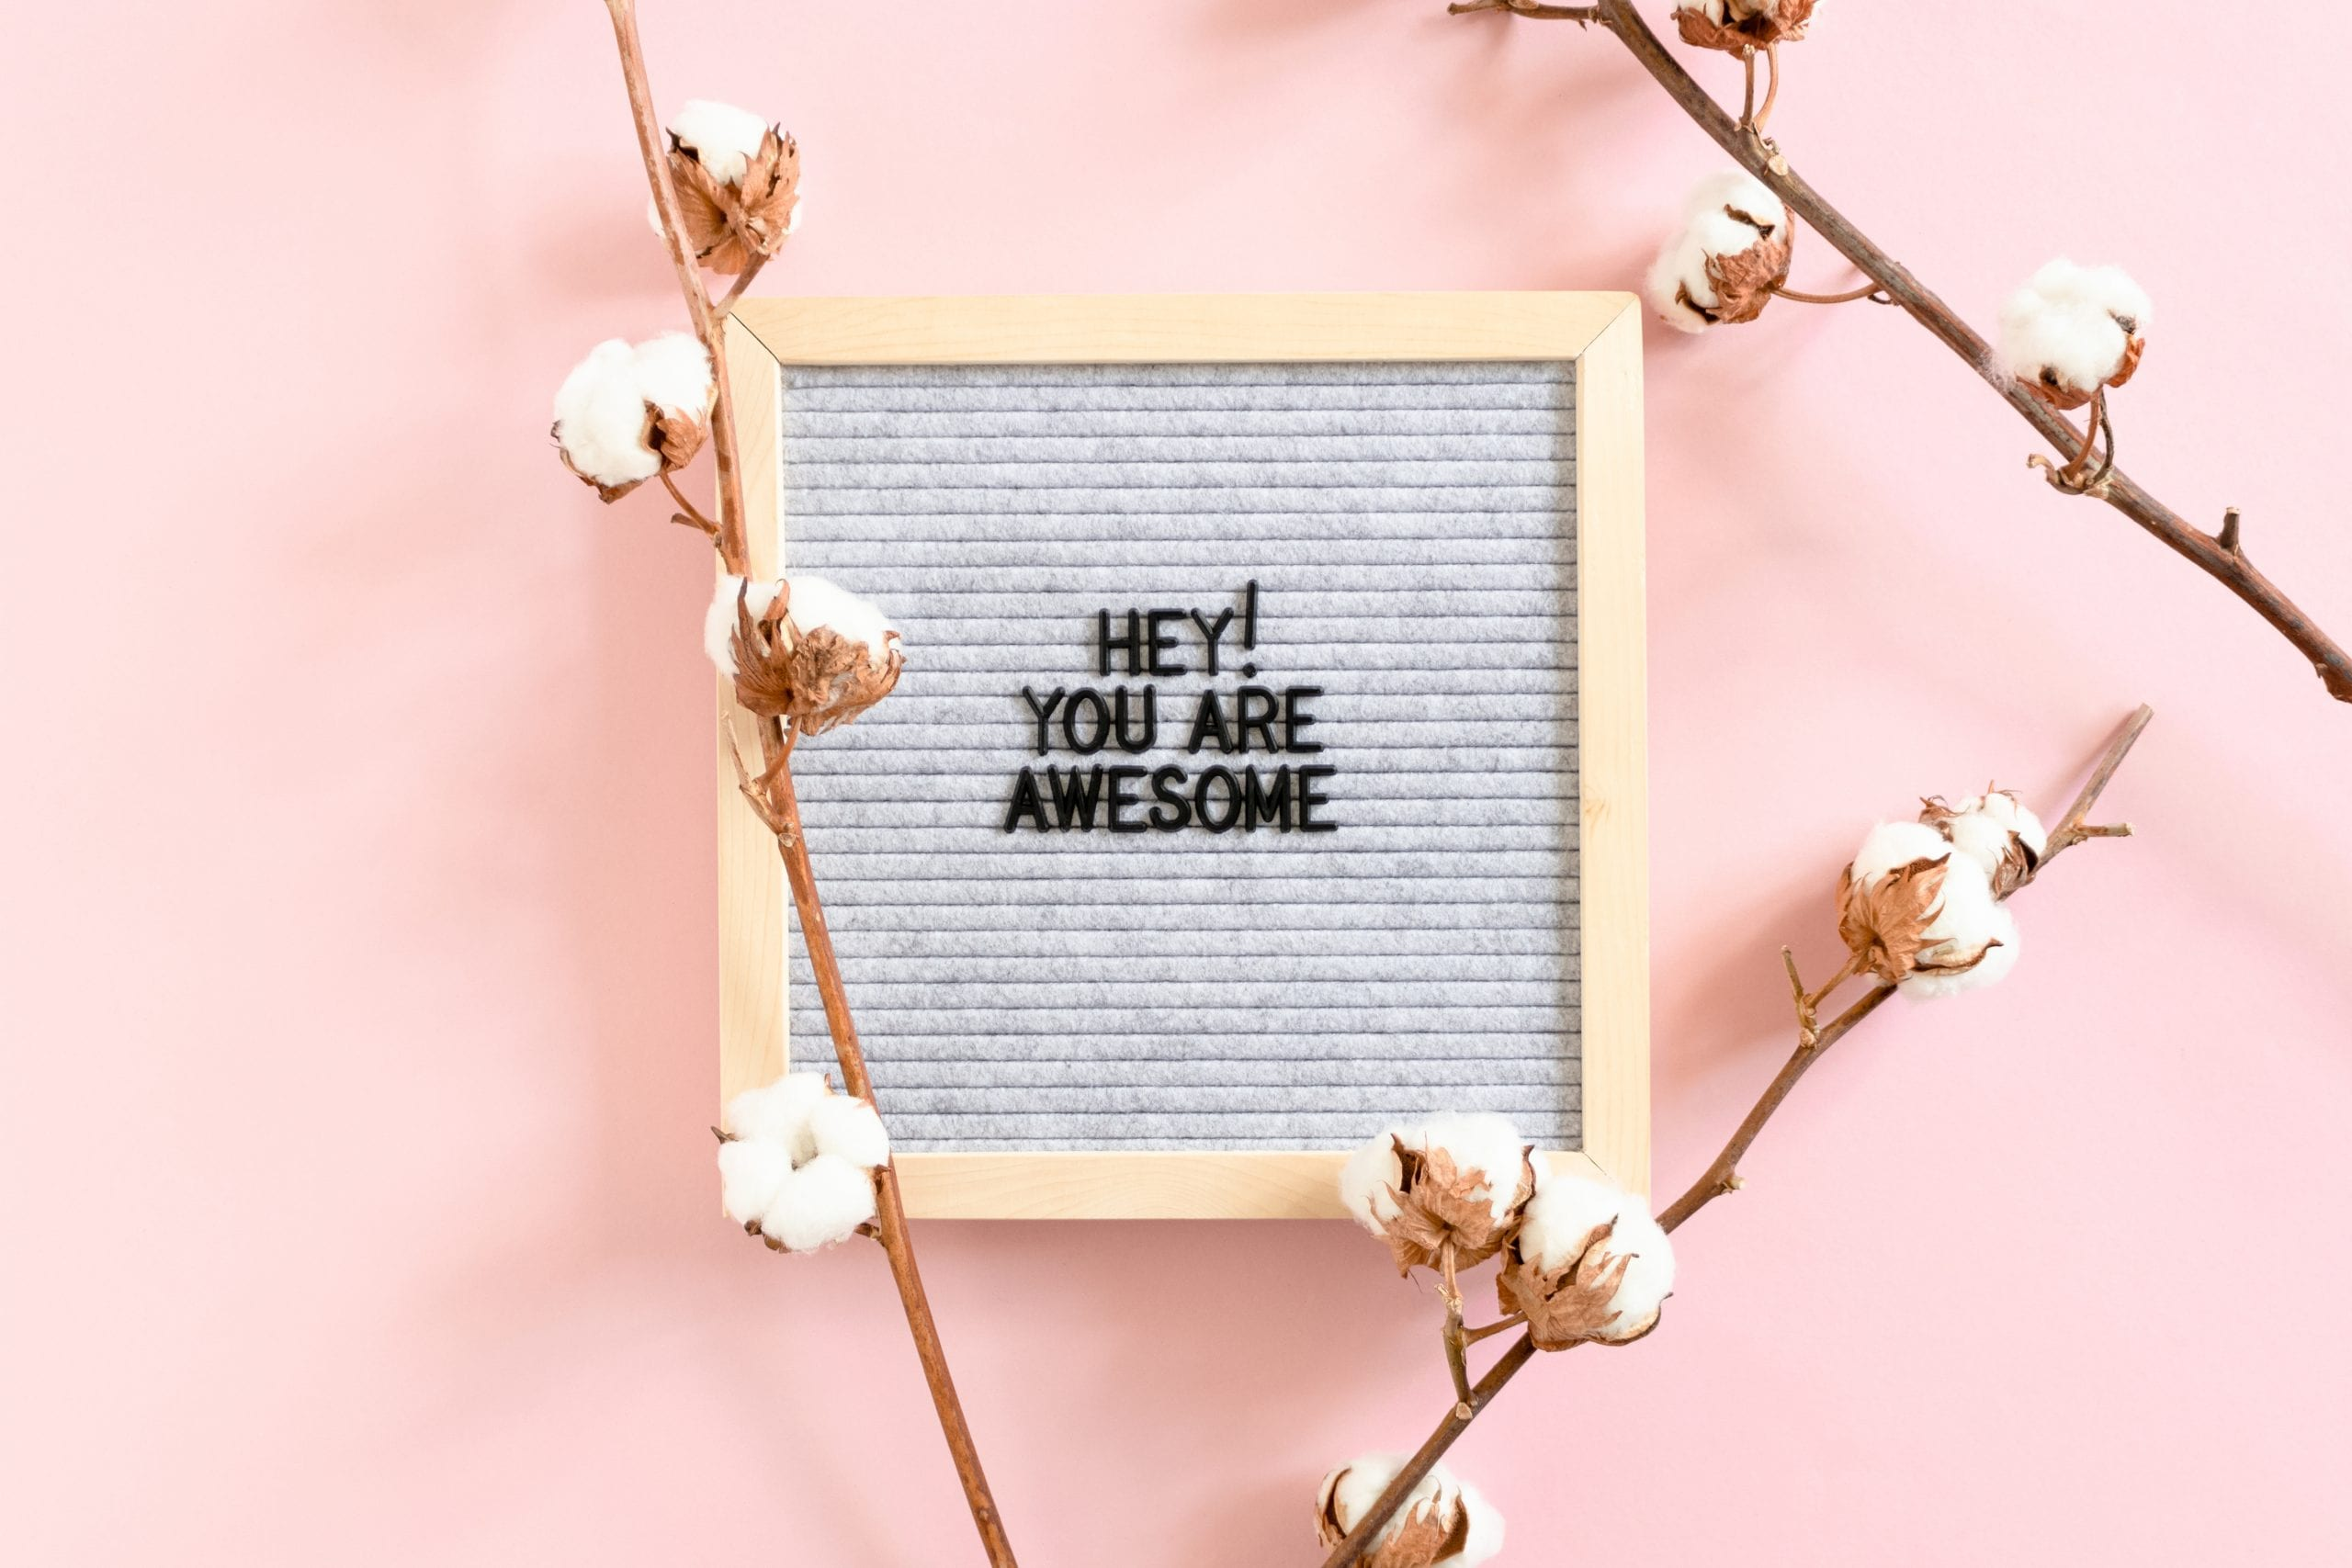 Cotton branches and letterboard with quote Hey you are awesome